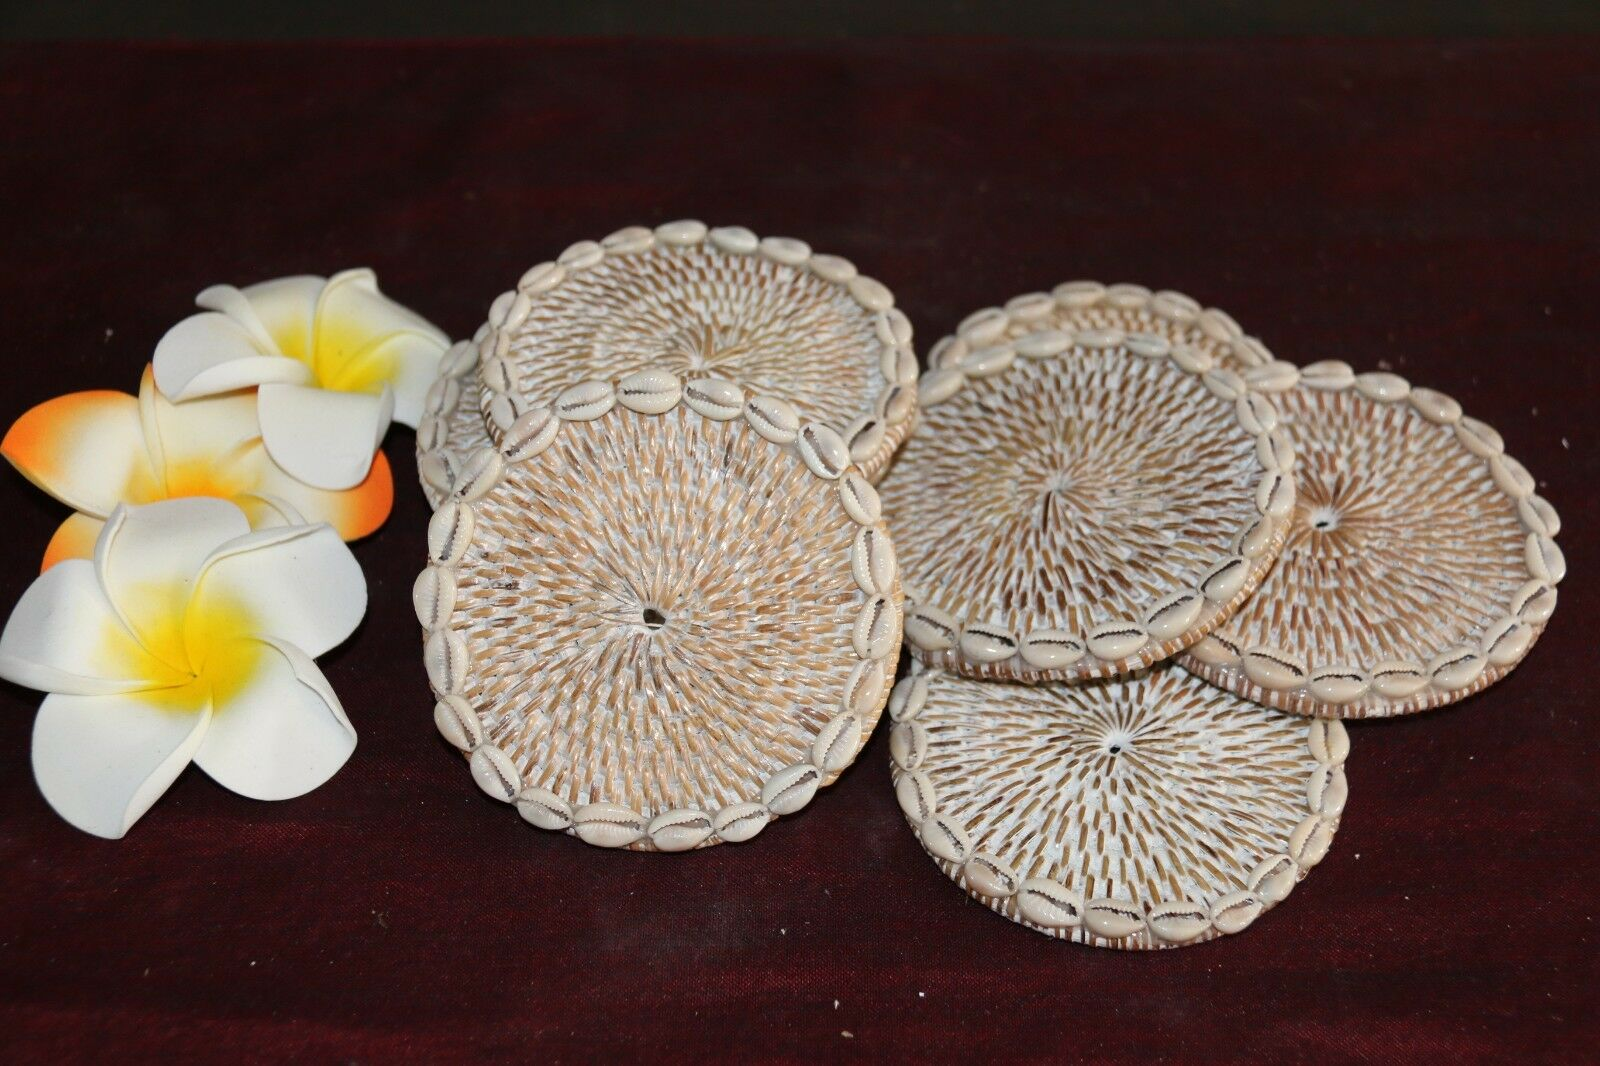 NEW Bali Woven Rattan Coasters w/Shell Trim - Balinese Coasters w/Shells 1 Pce